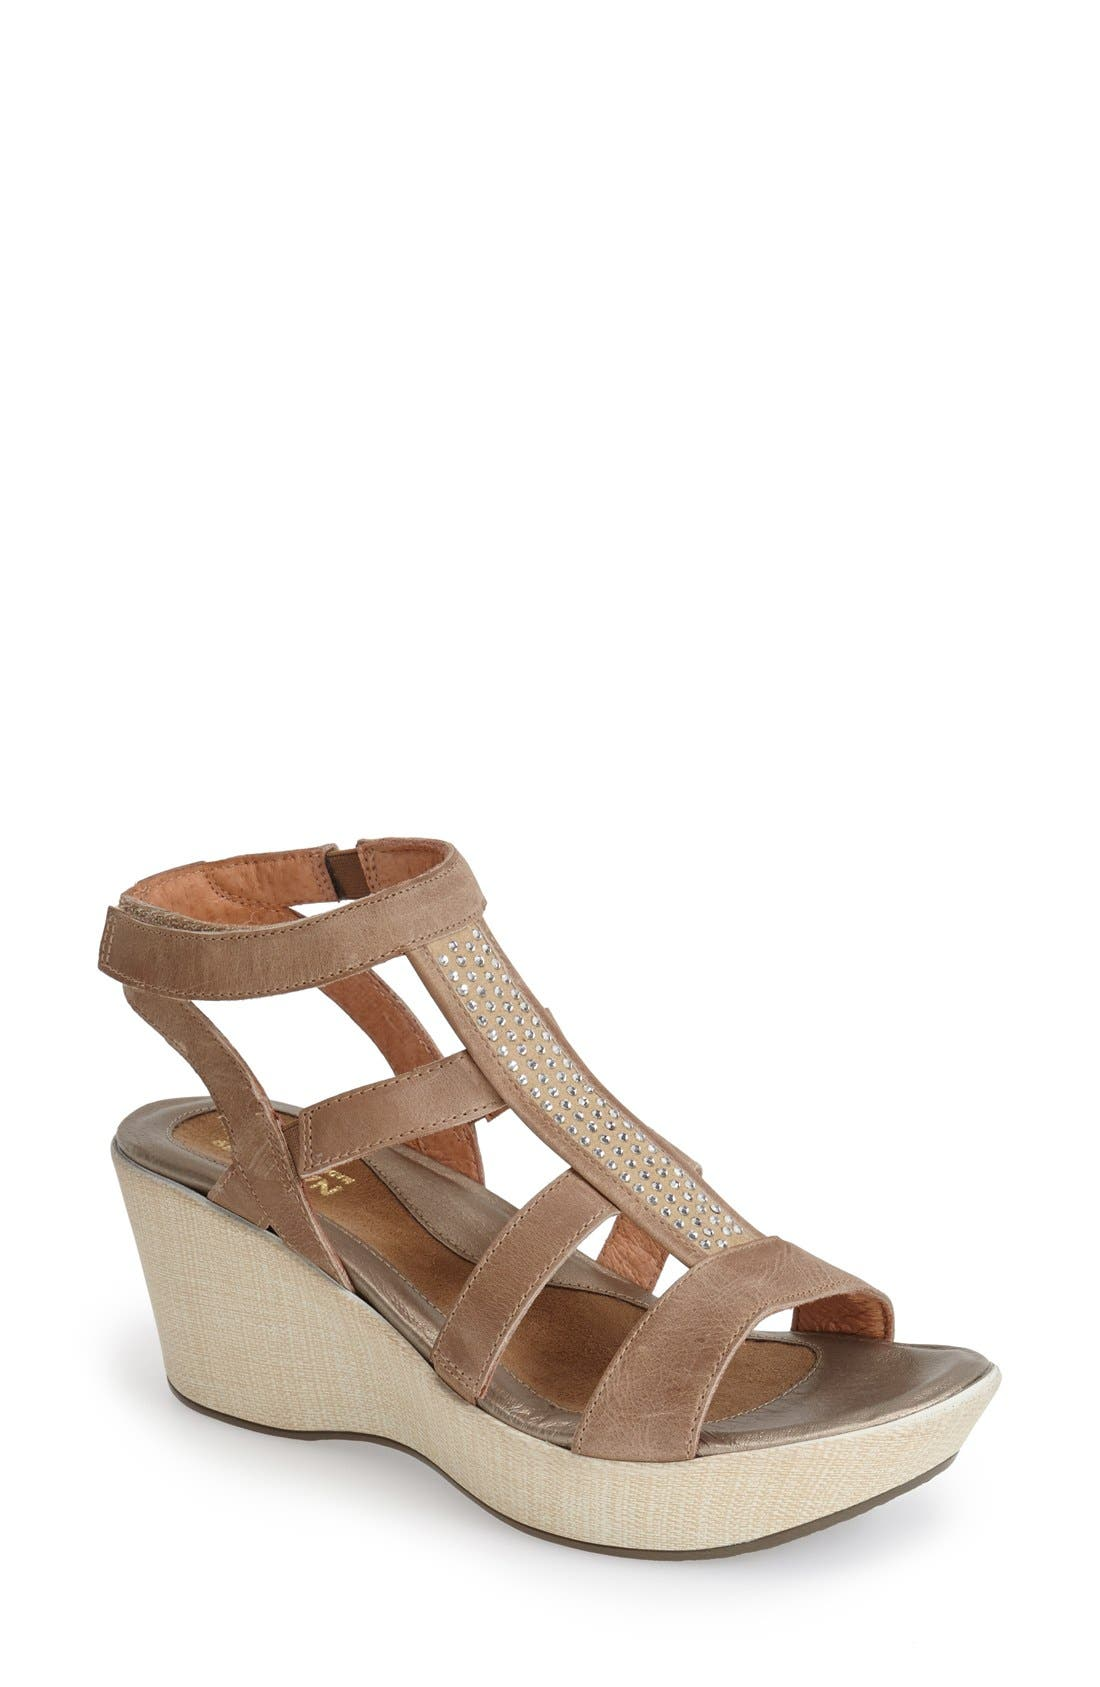 'Mystery' Platform Wedge Sandal,                             Main thumbnail 1, color,